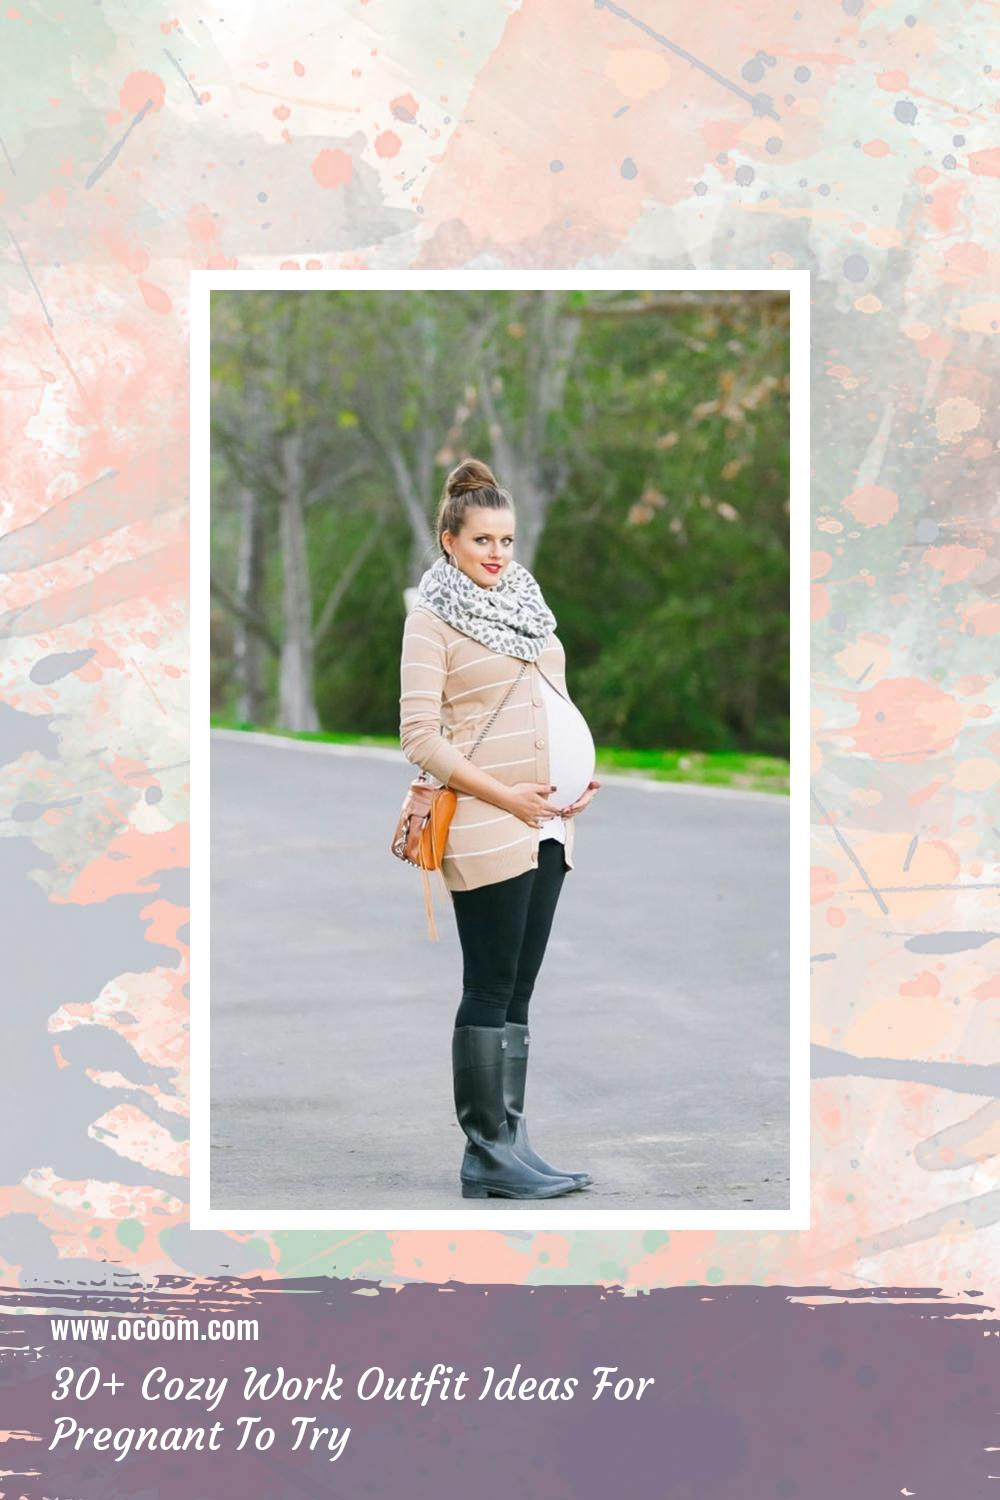 30+ Cozy Work Outfit Ideas For Pregnant To Try 23